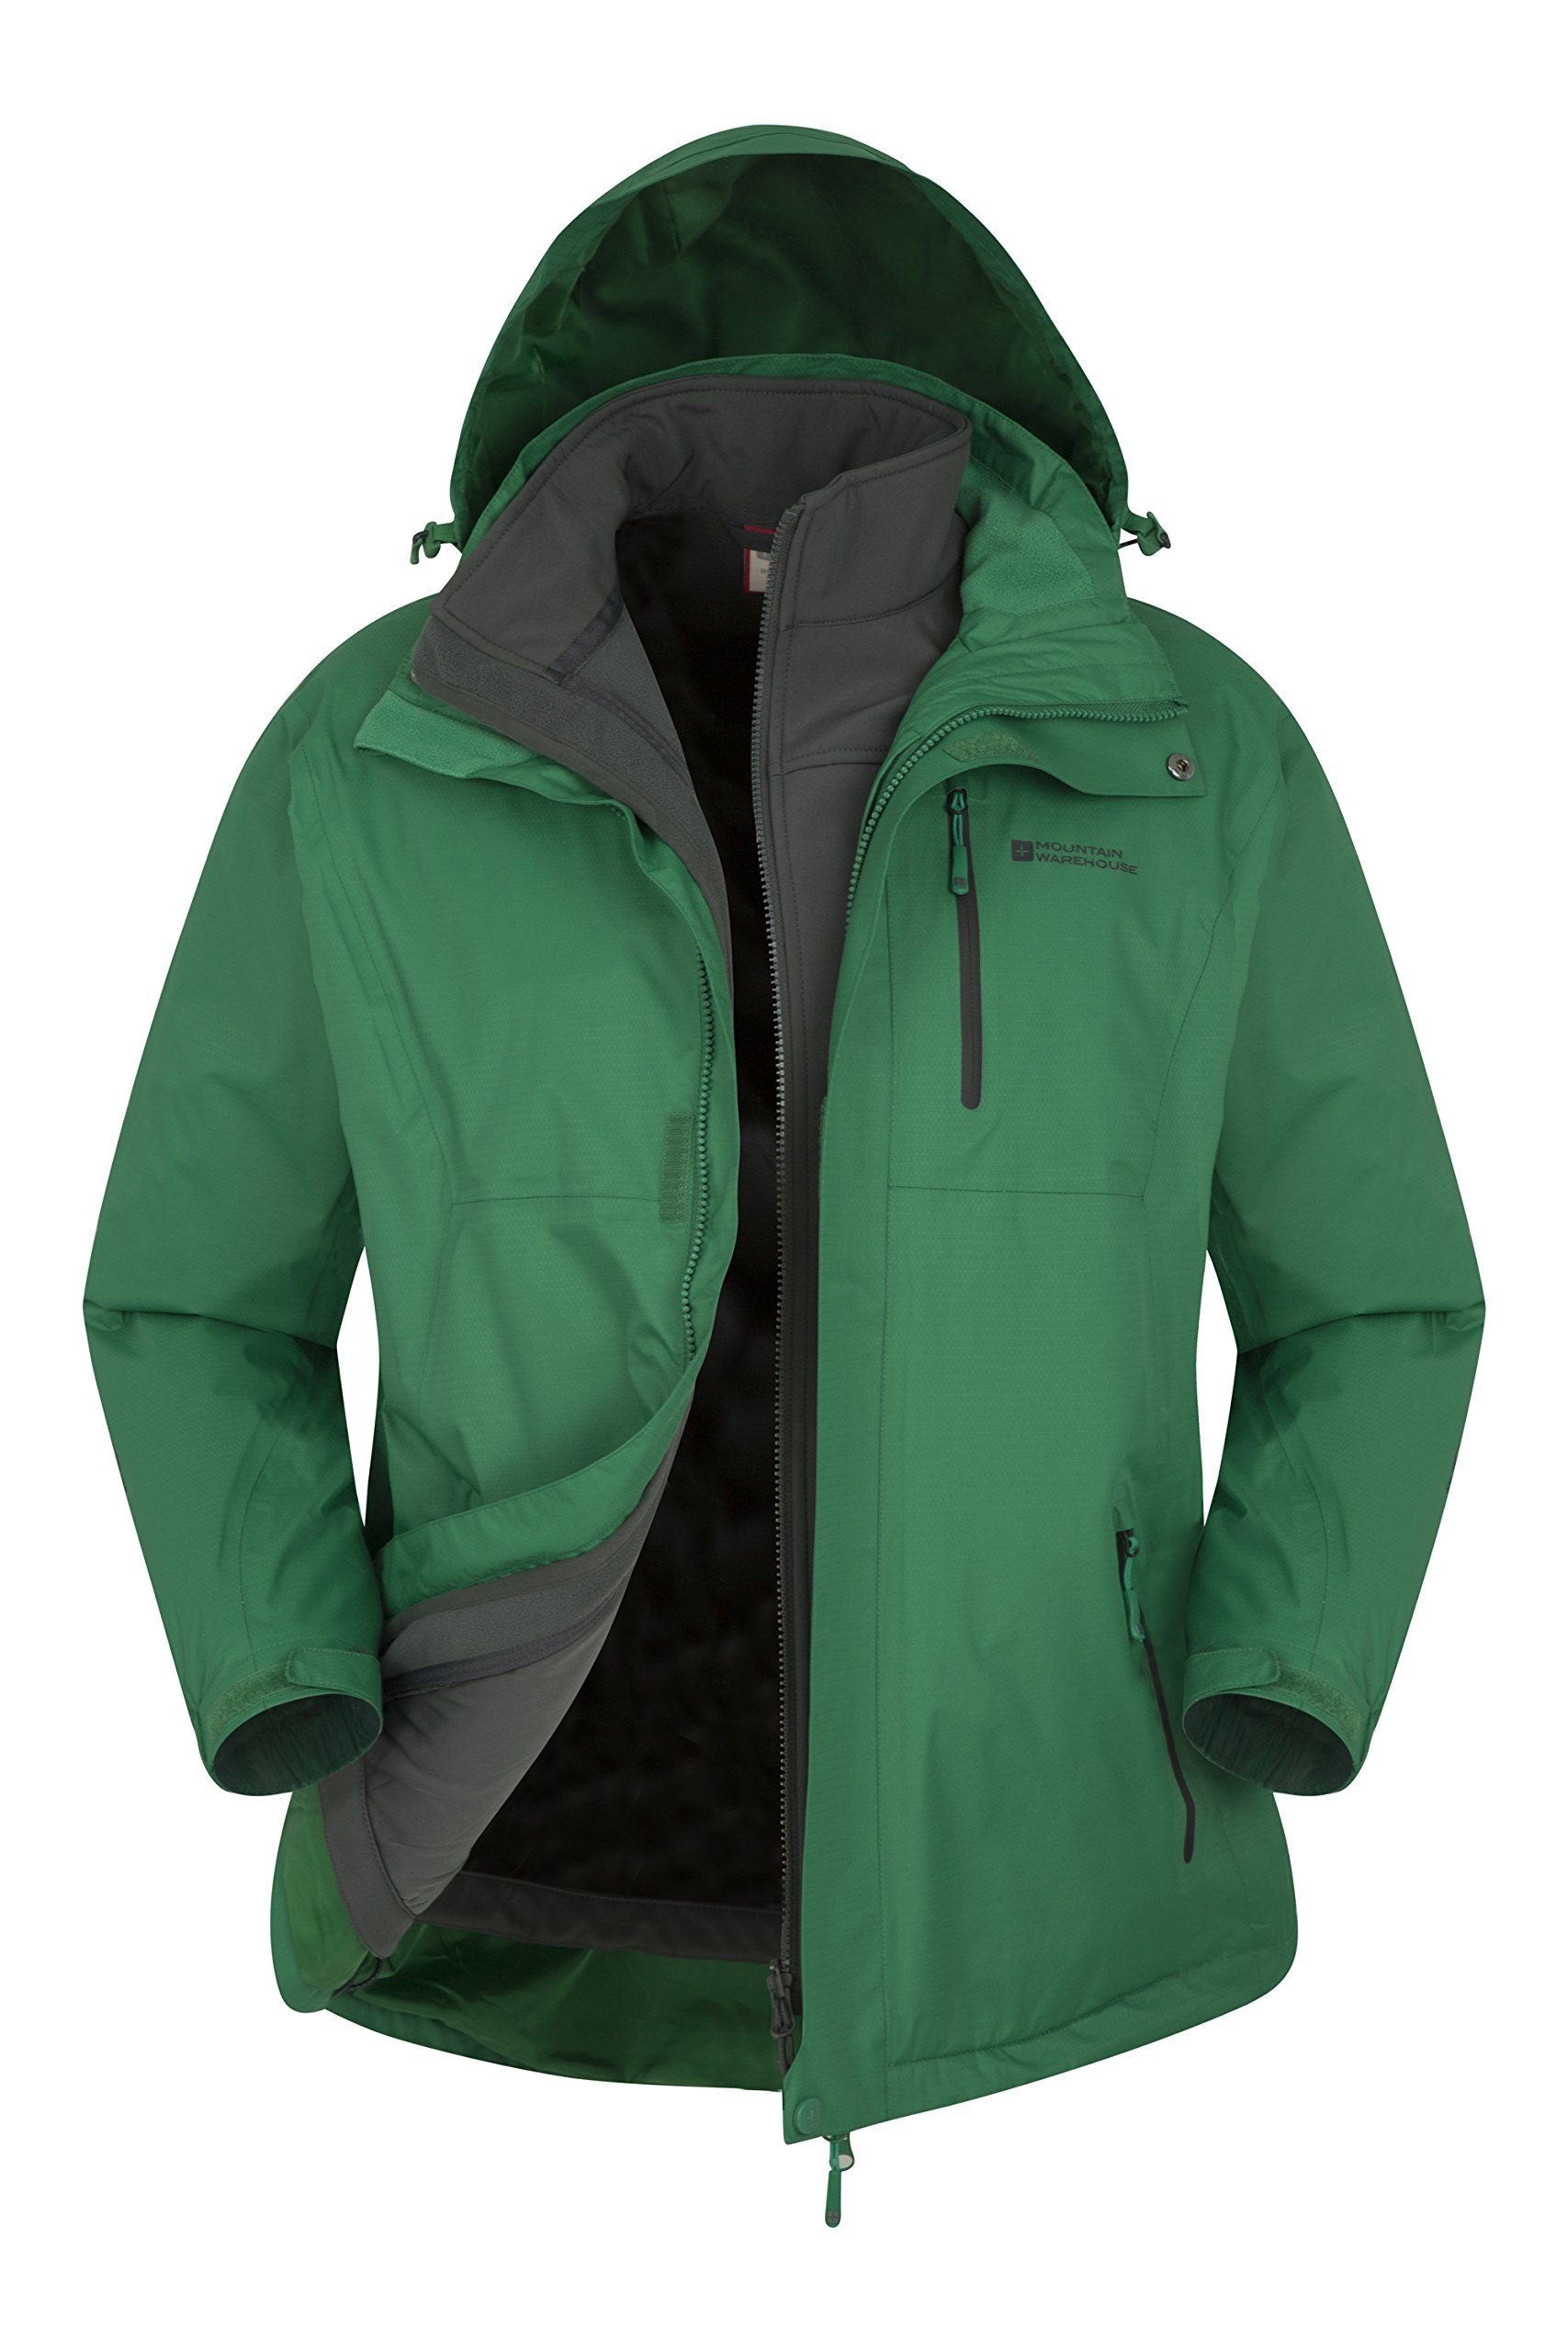 Mountain Warehouse Bracken Extreme 3in1 Mens Jacket –Durable Raincoat Green Large